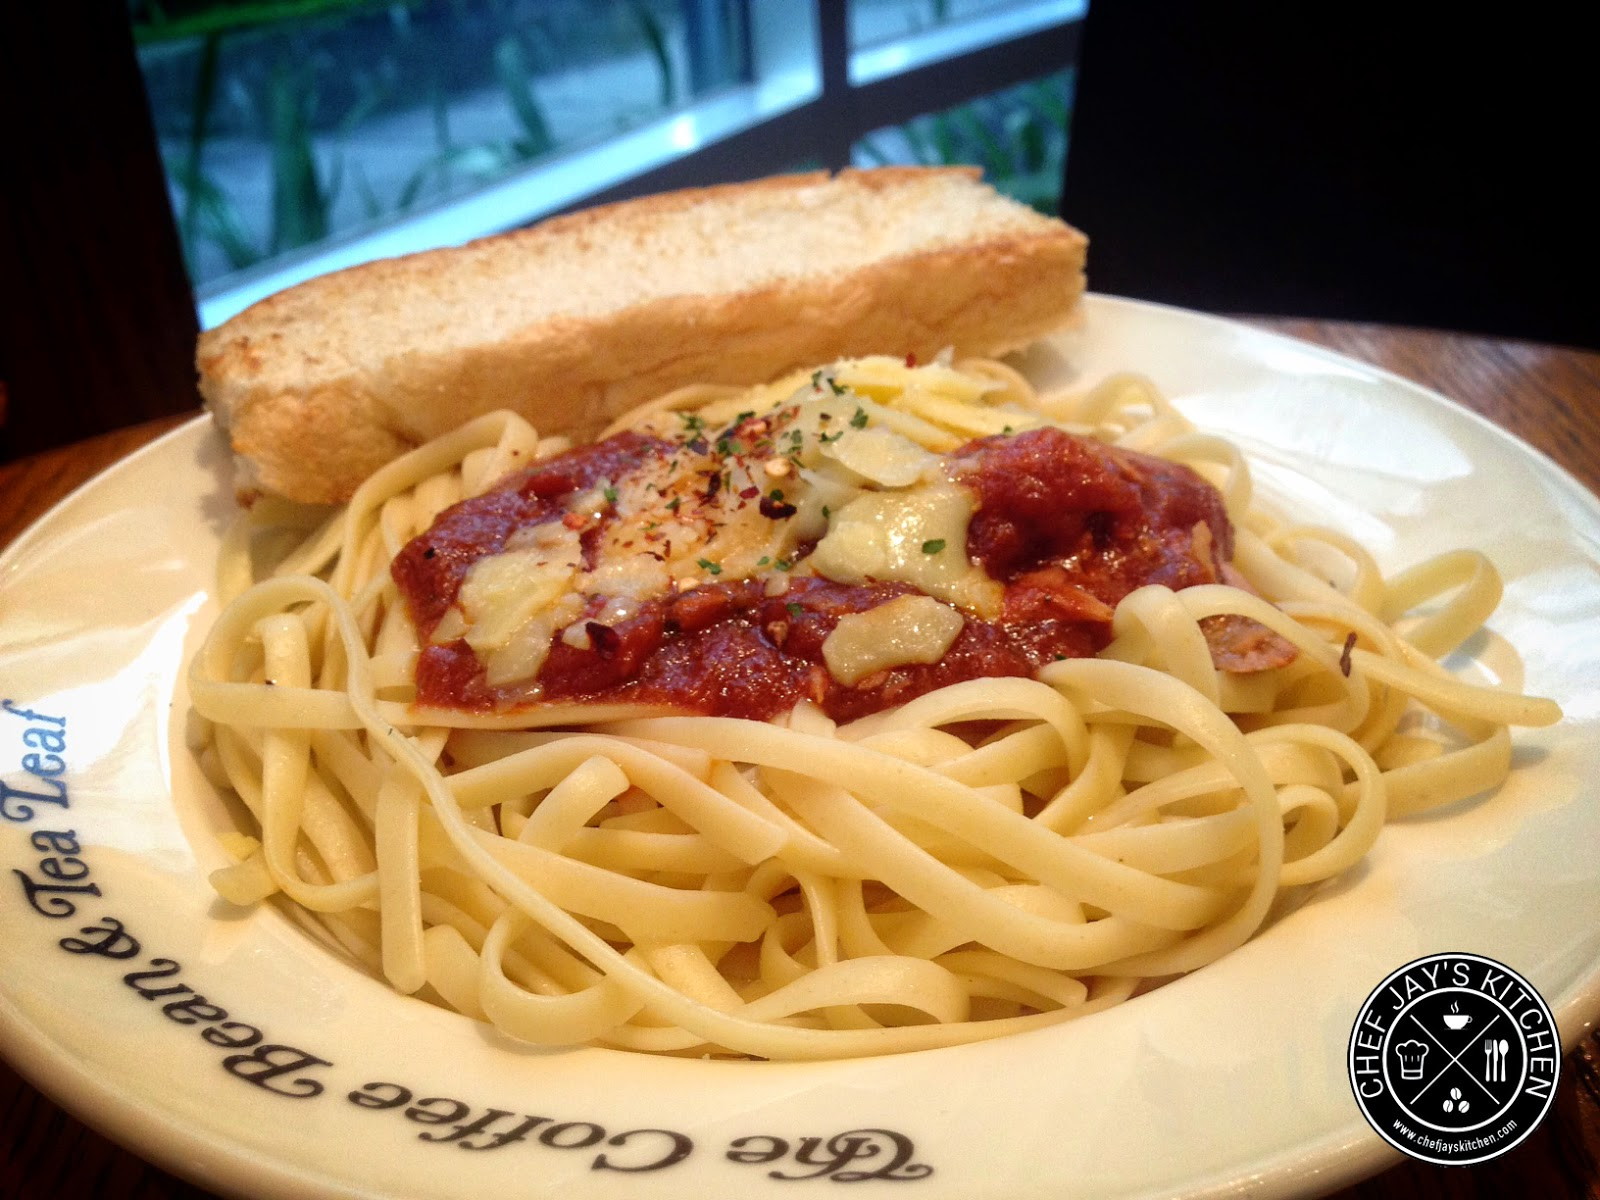 The Coffee Bean & Tea Leaf - CBTL Spicy Tuna Linguine